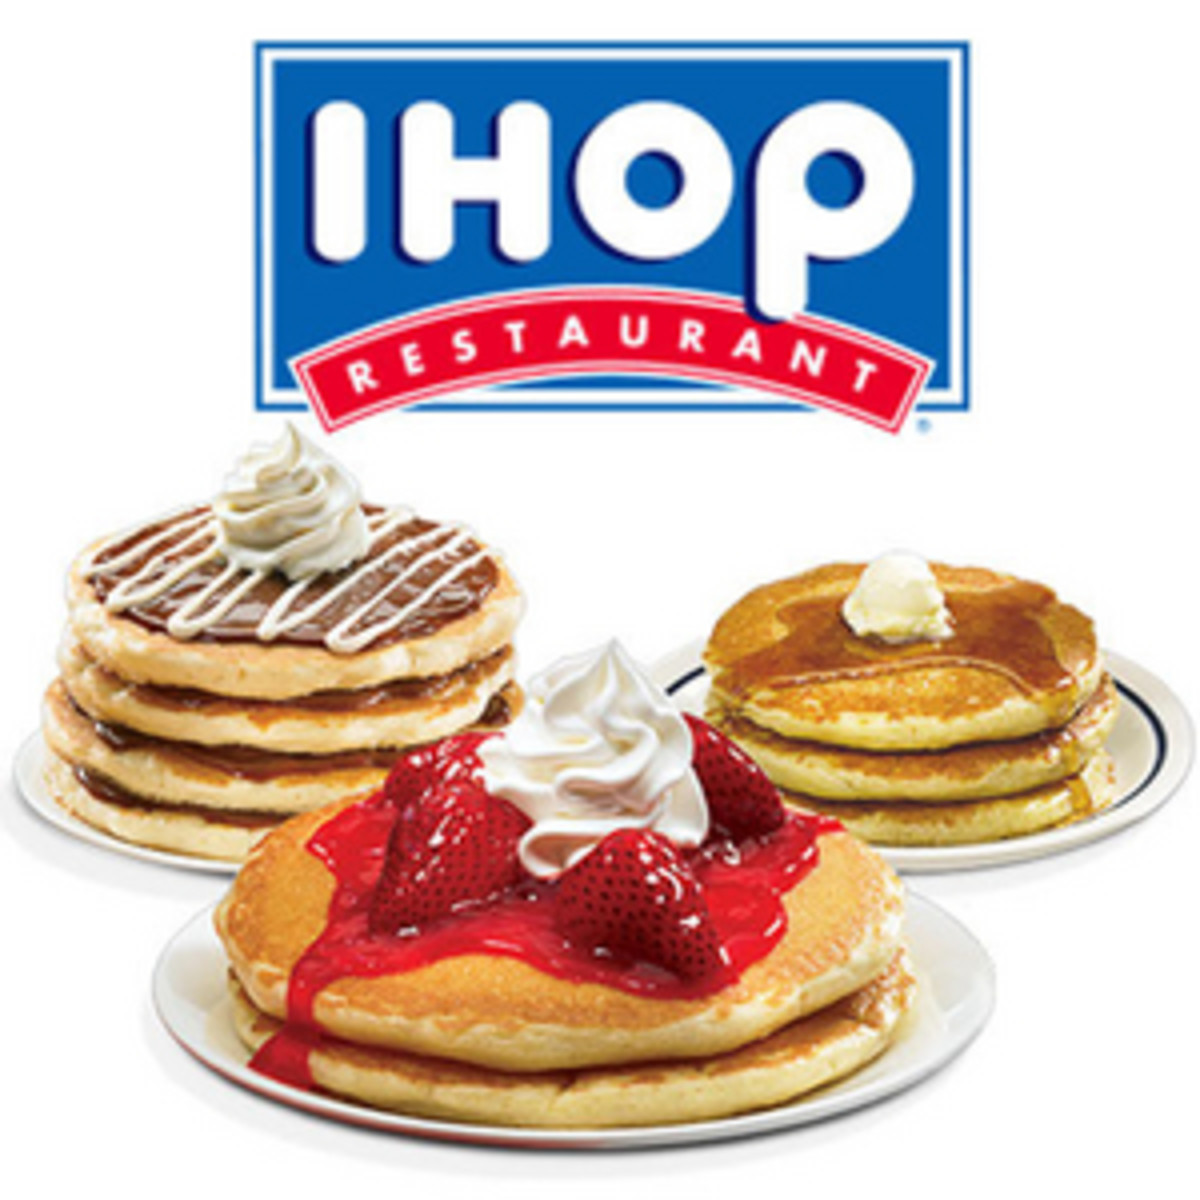 7 Reasons to Eat at IHOP